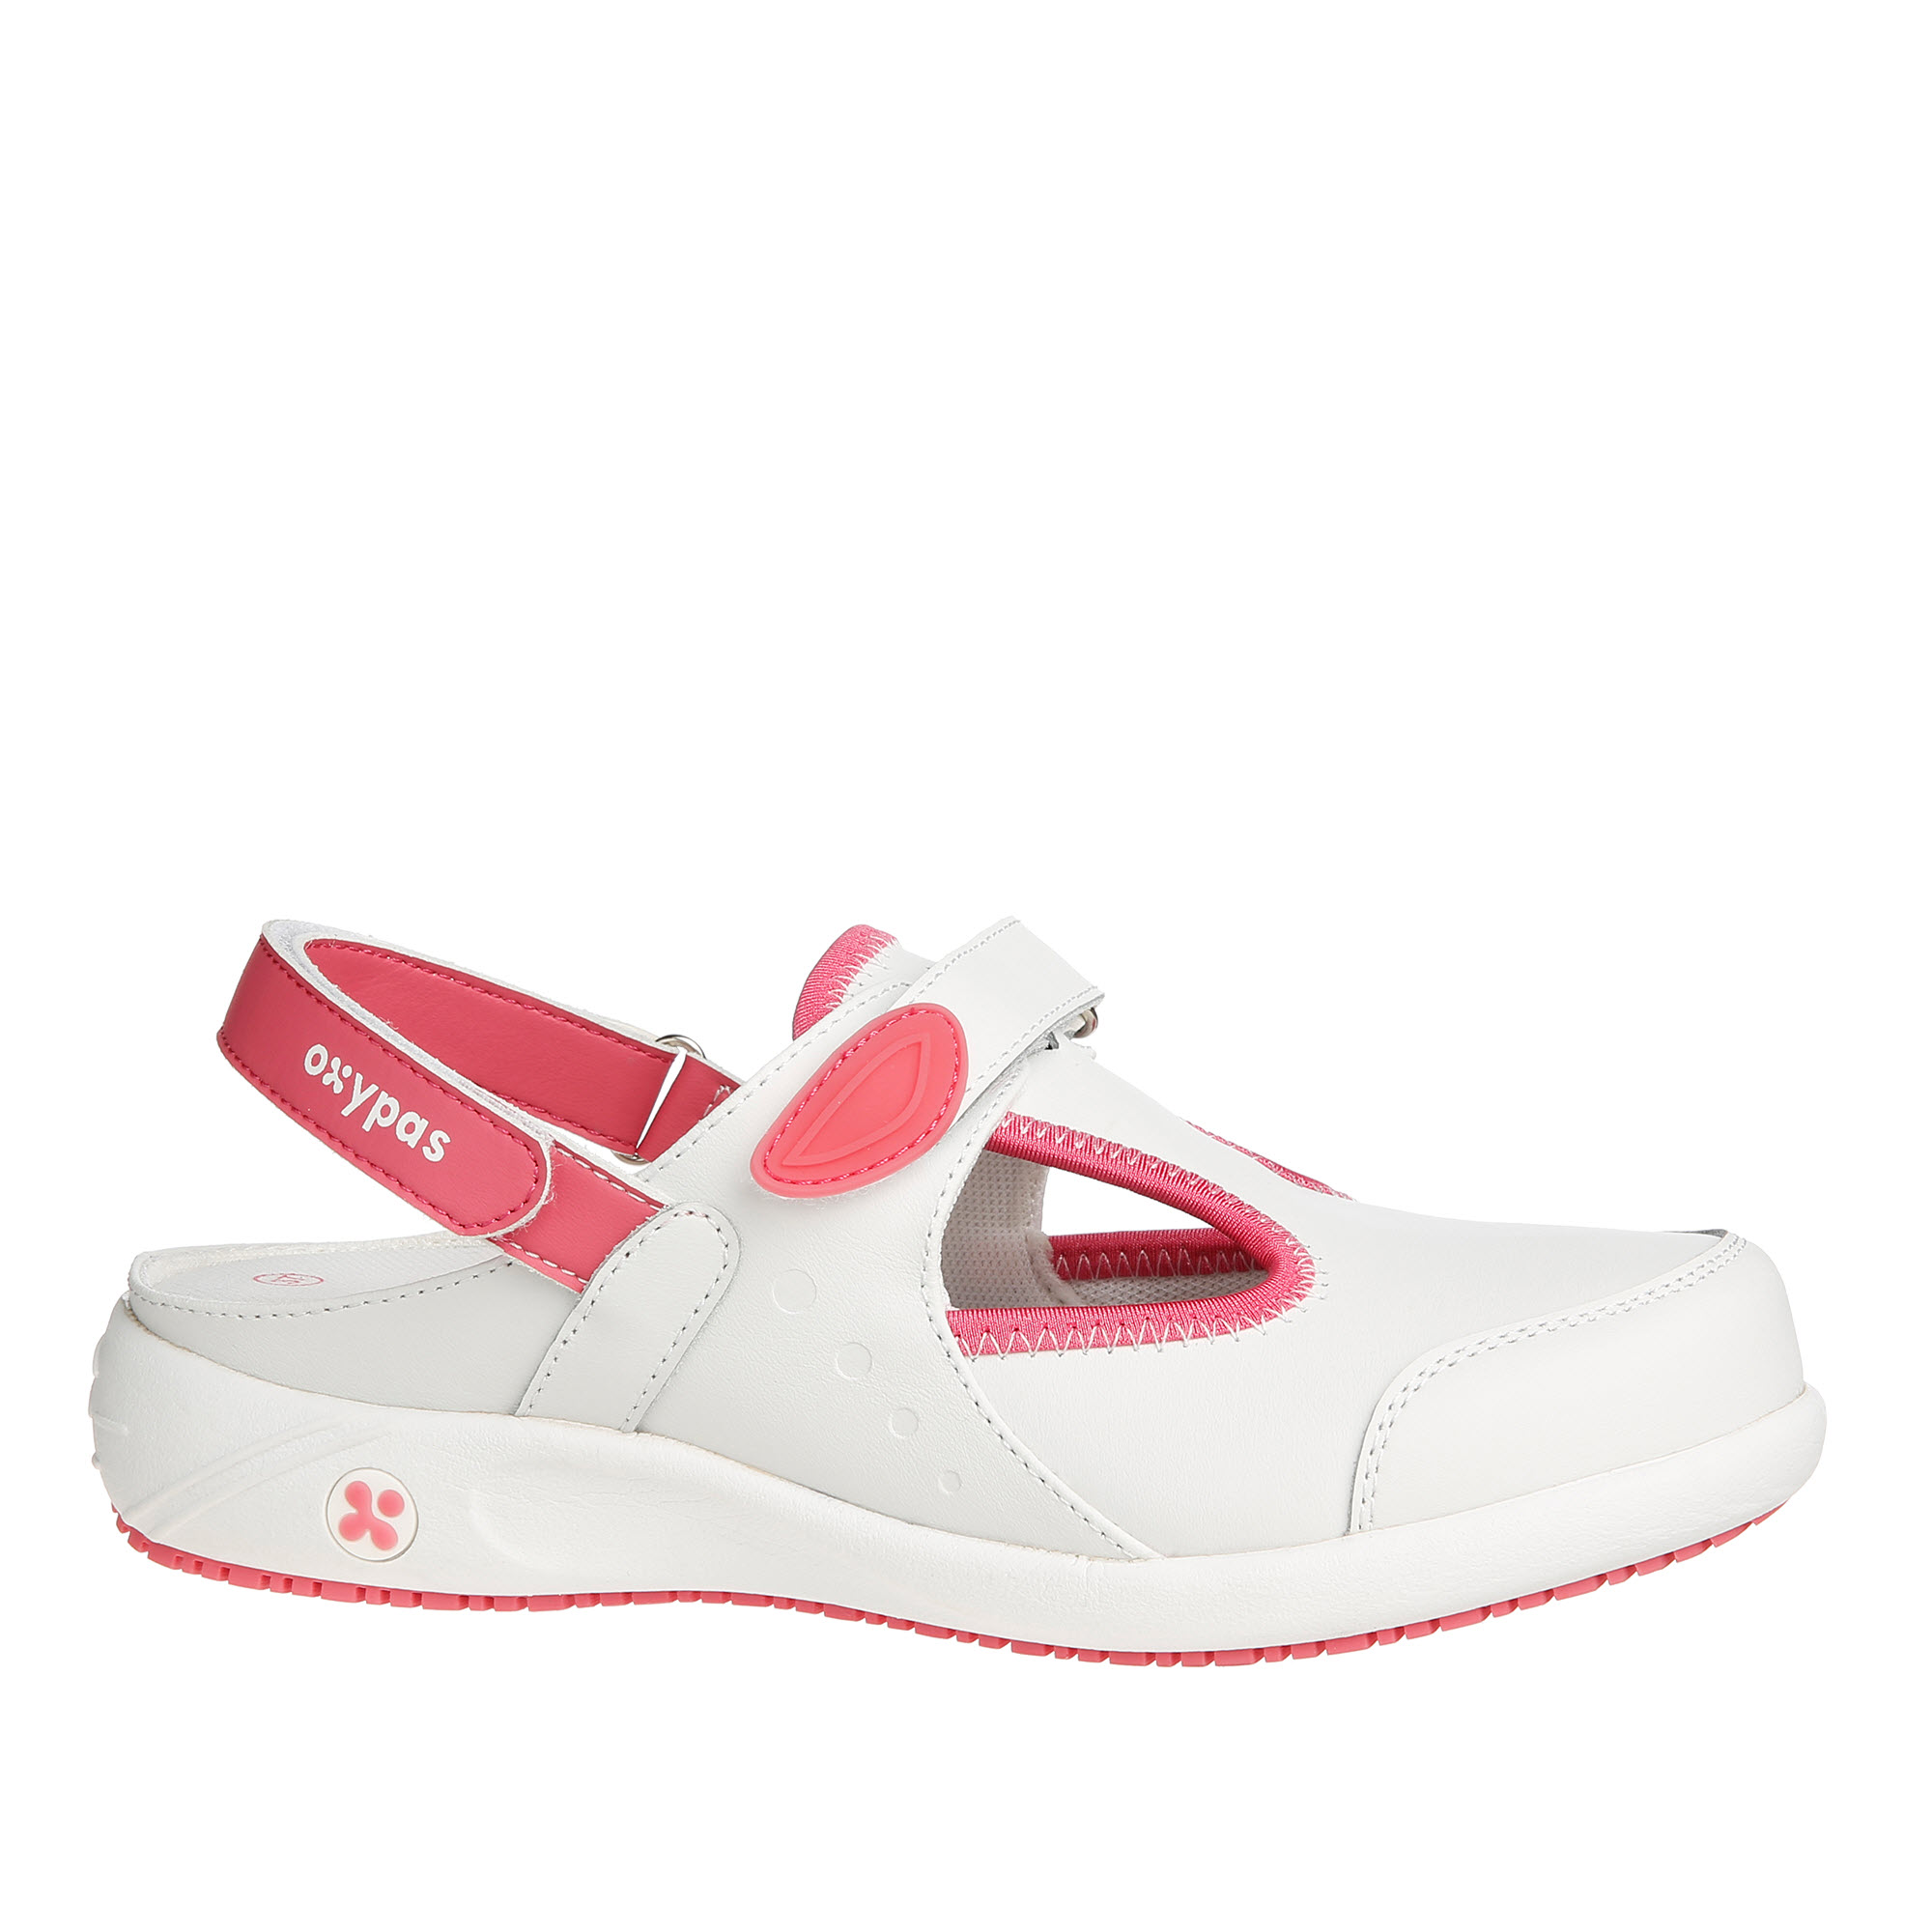 Buy Oxypas Carin Carin Carin Nursing Schuhe for Damens Oxypas Online at Best ... b3ab86